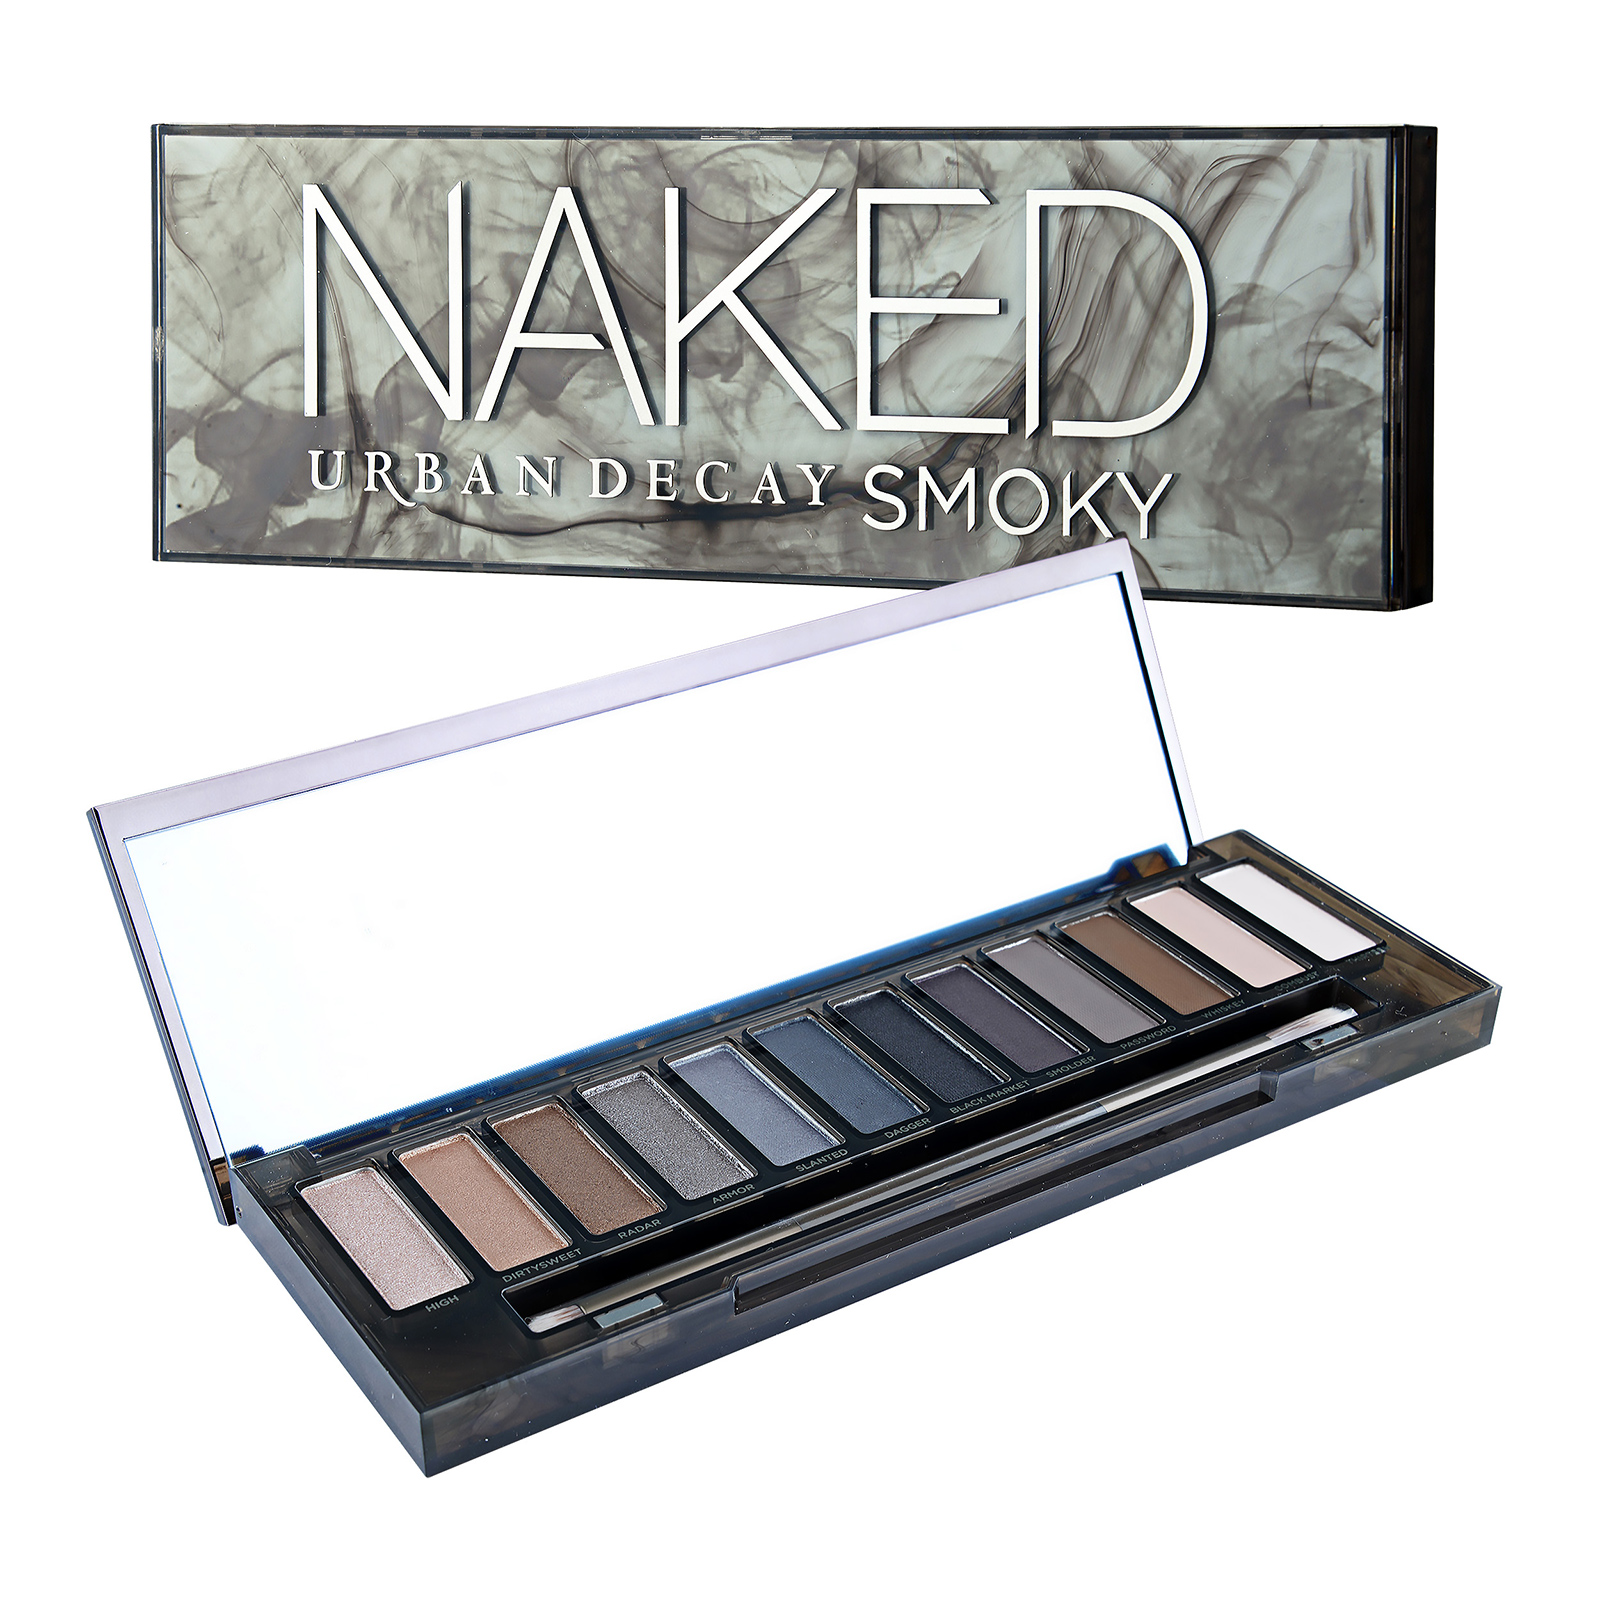 Urban Decay  Naked Smoky Eyeshadow Palette 1box, from Cosme-De.com